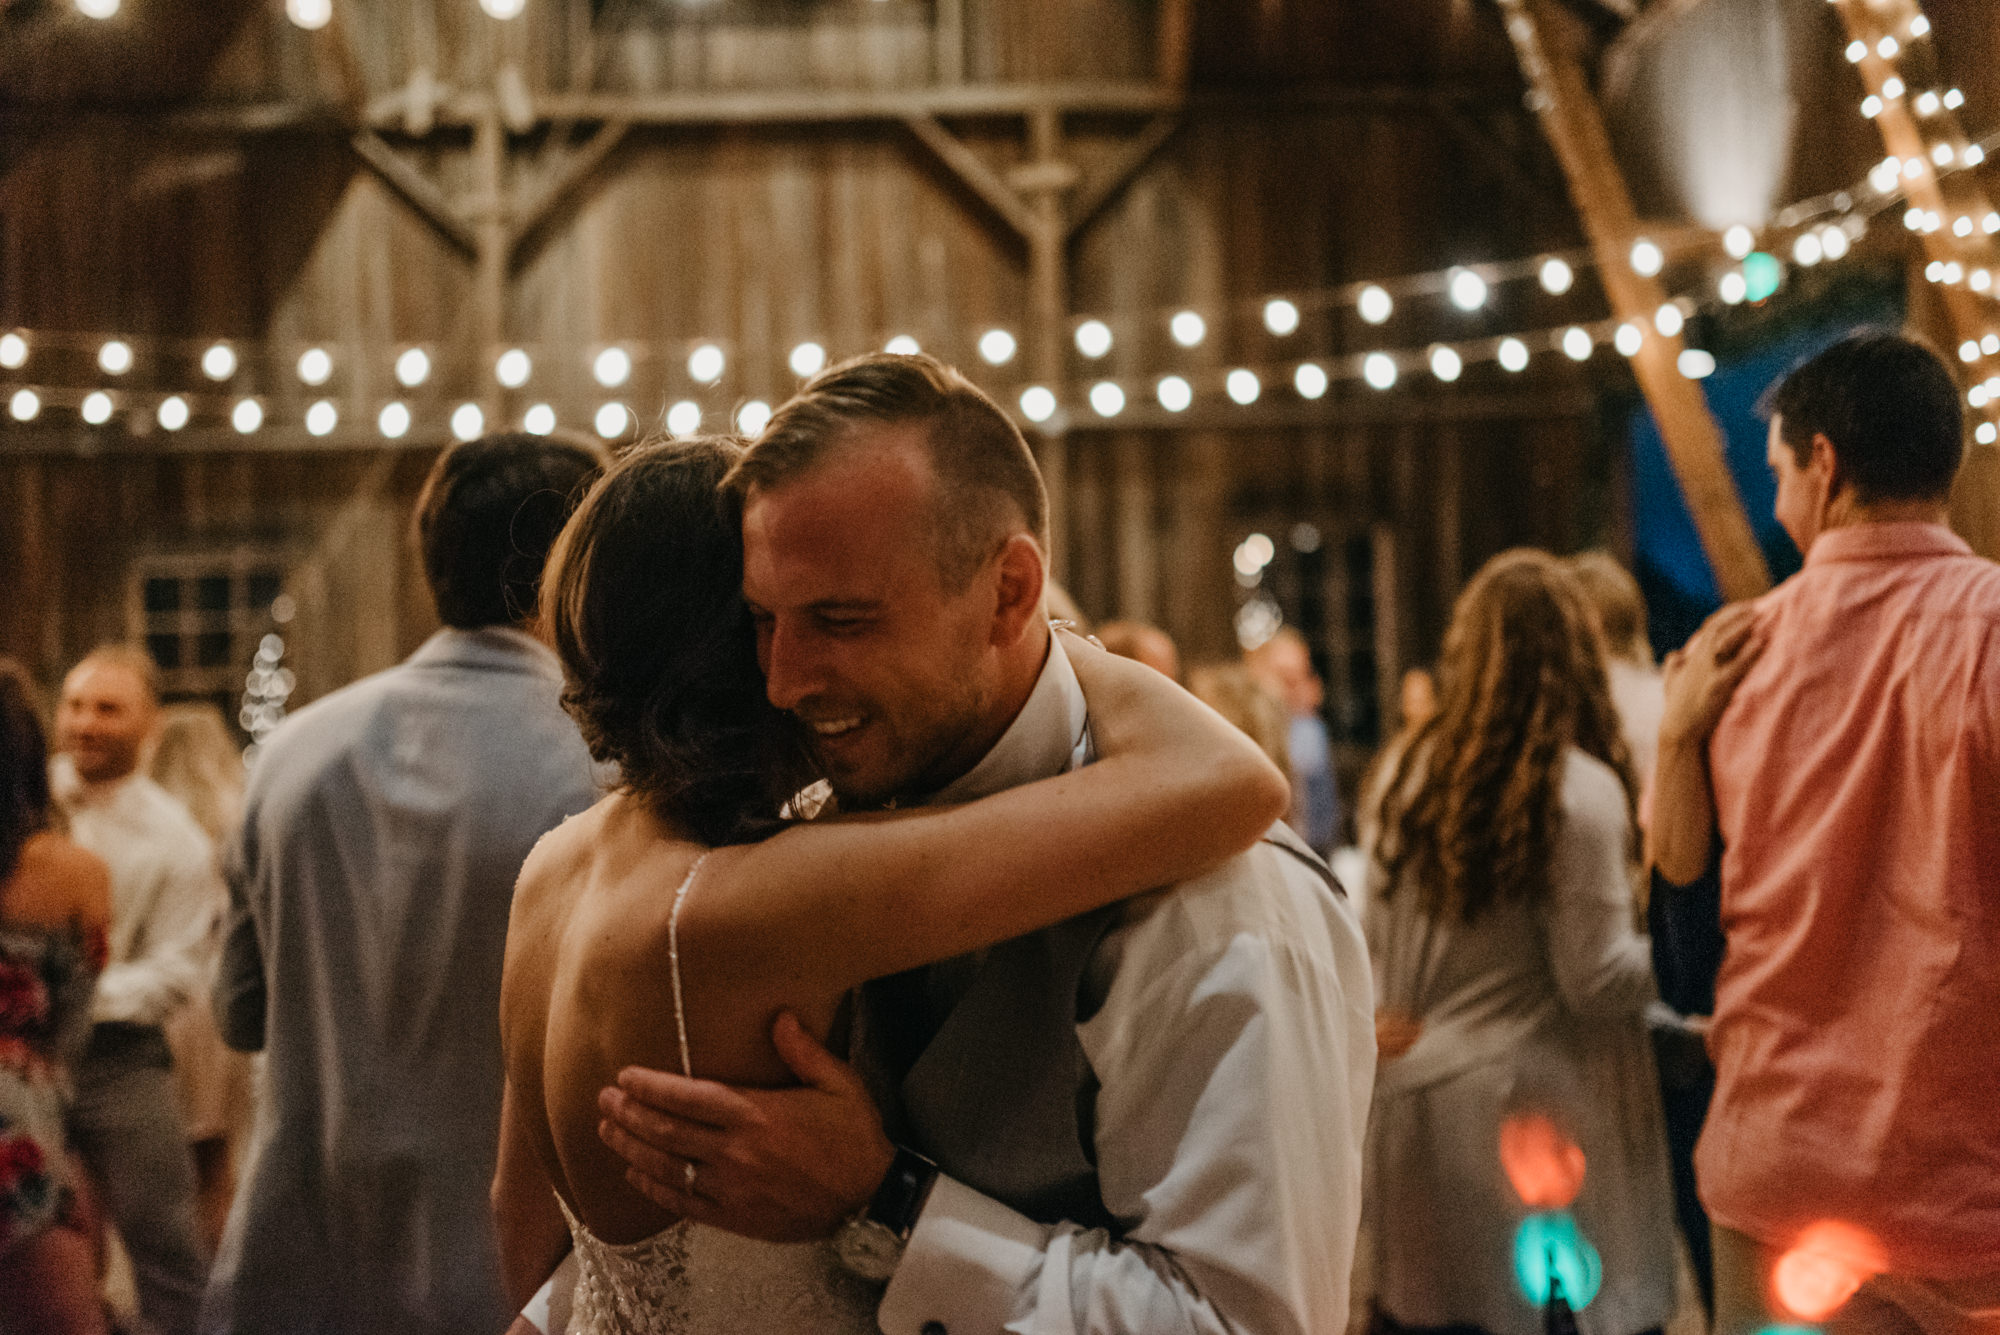 219-portland-northwest-wedding-bubble-exit-barn-string-lights.jpg